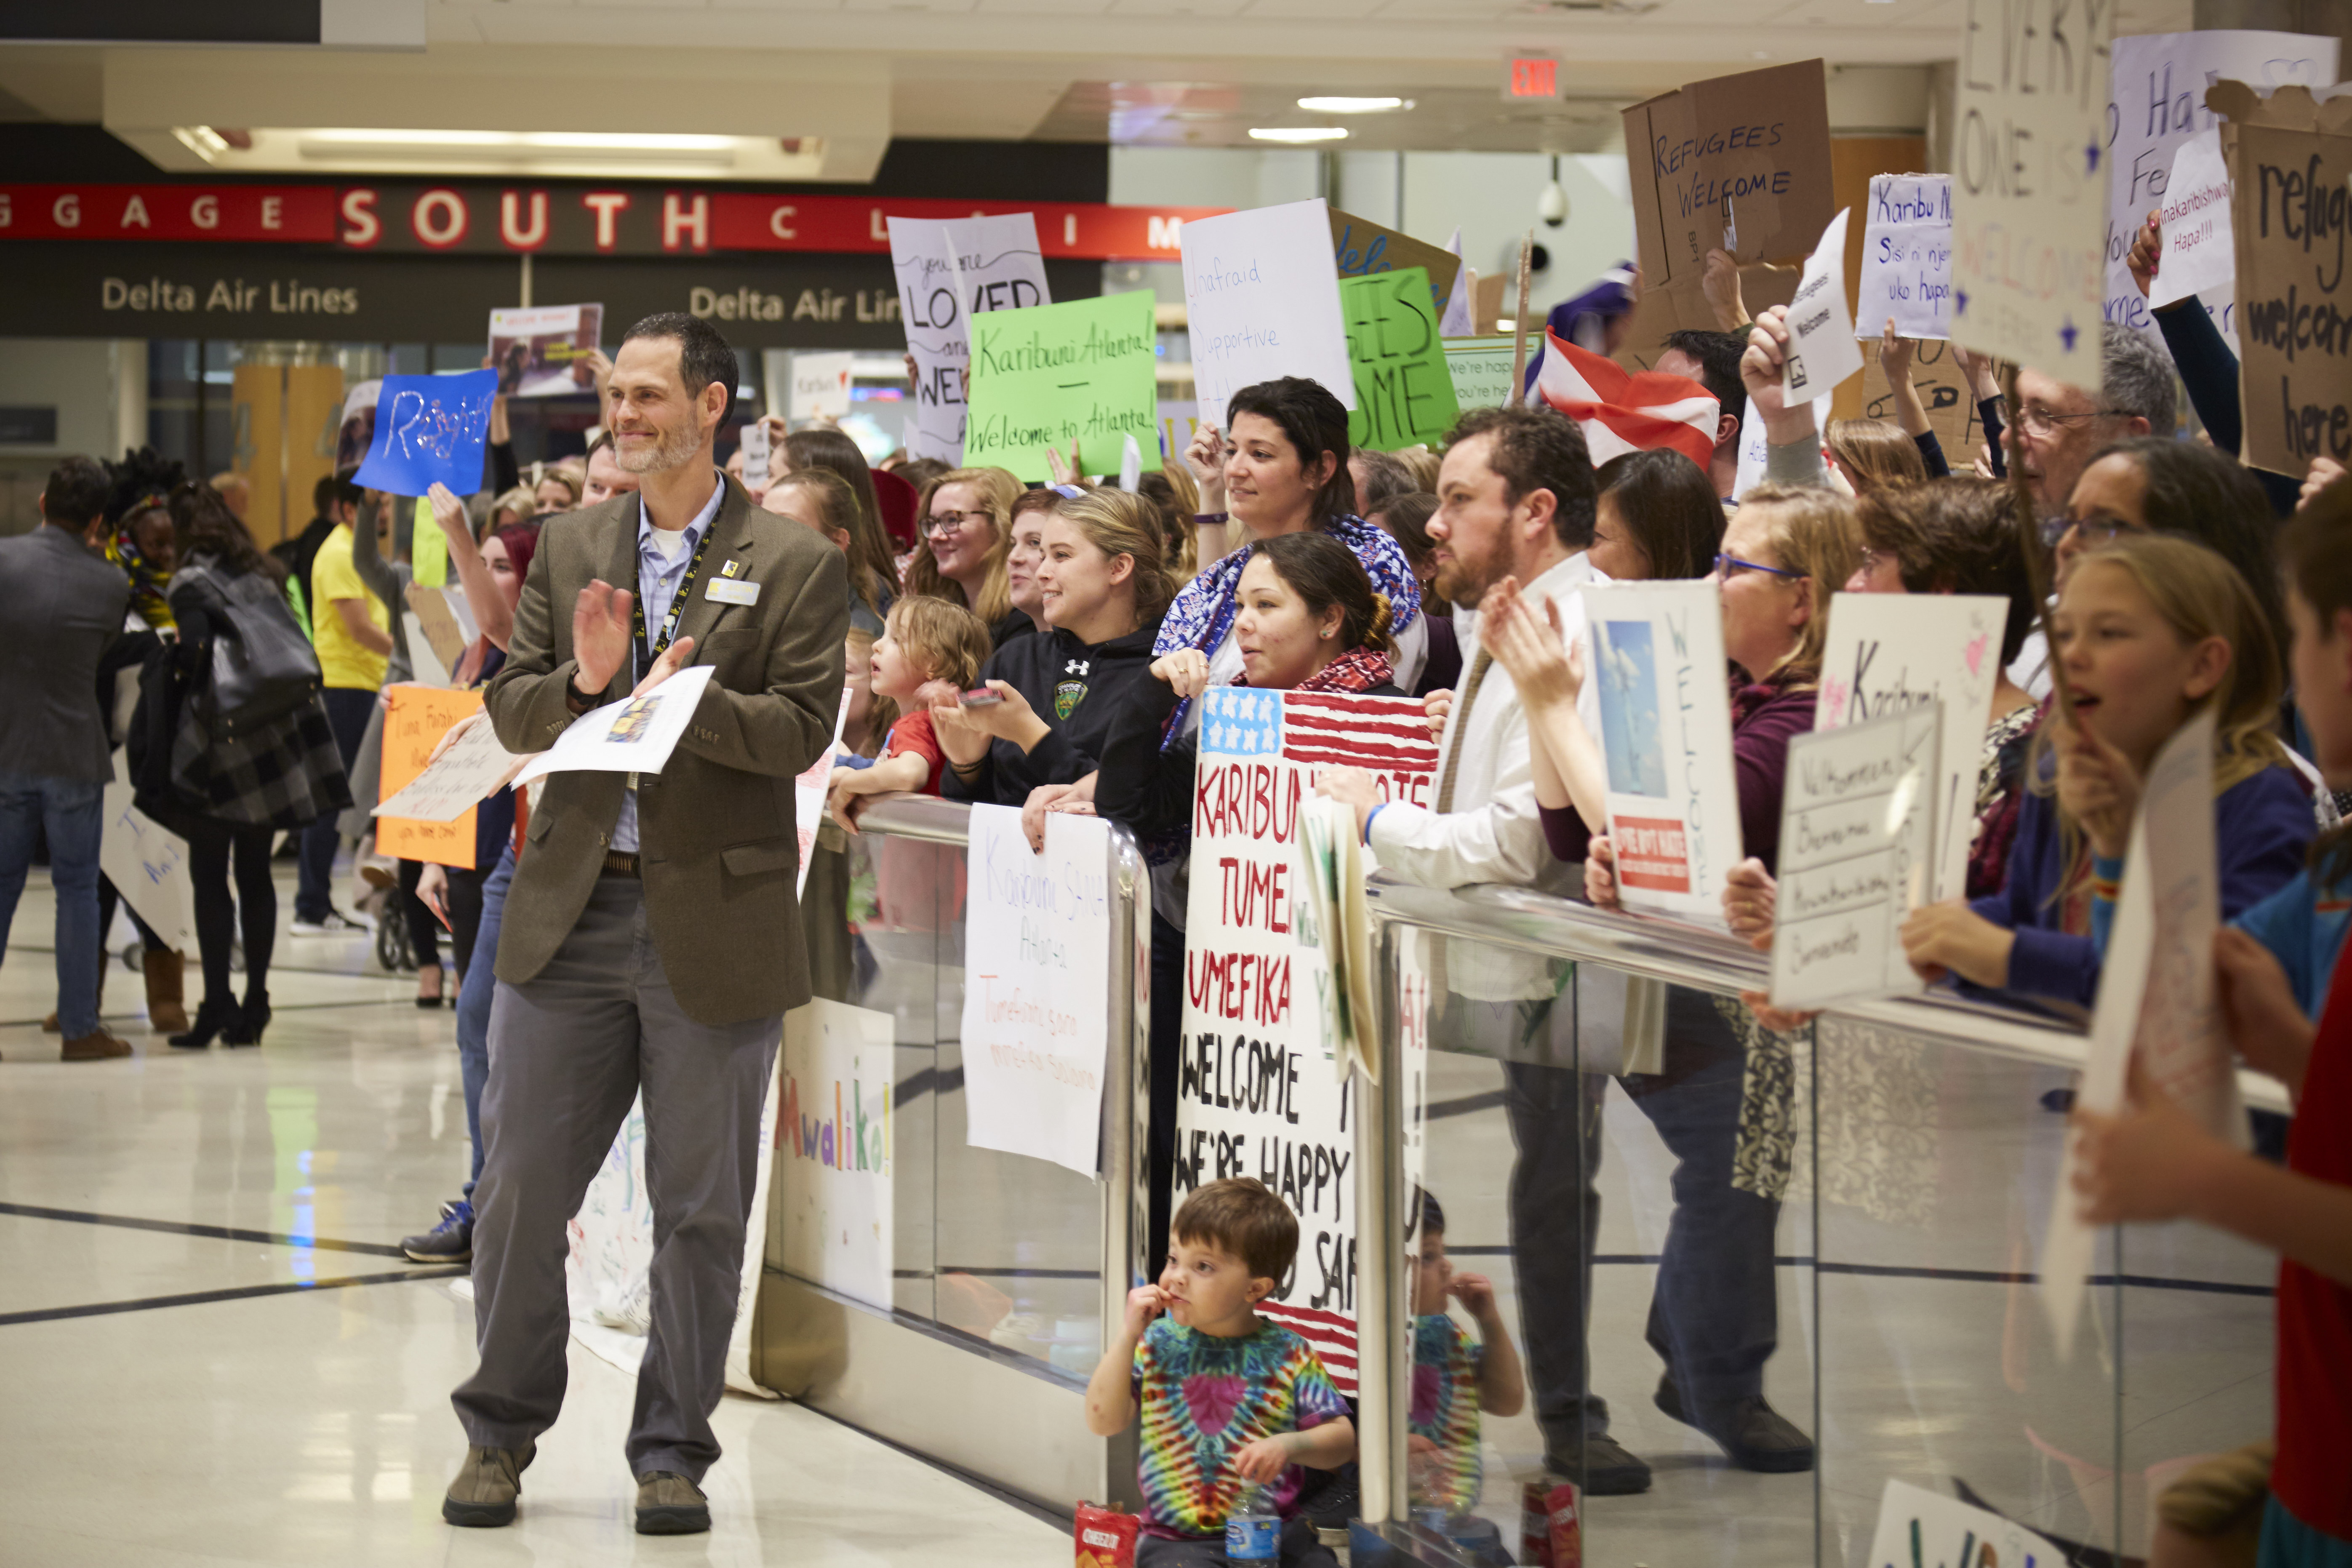 Airport rally